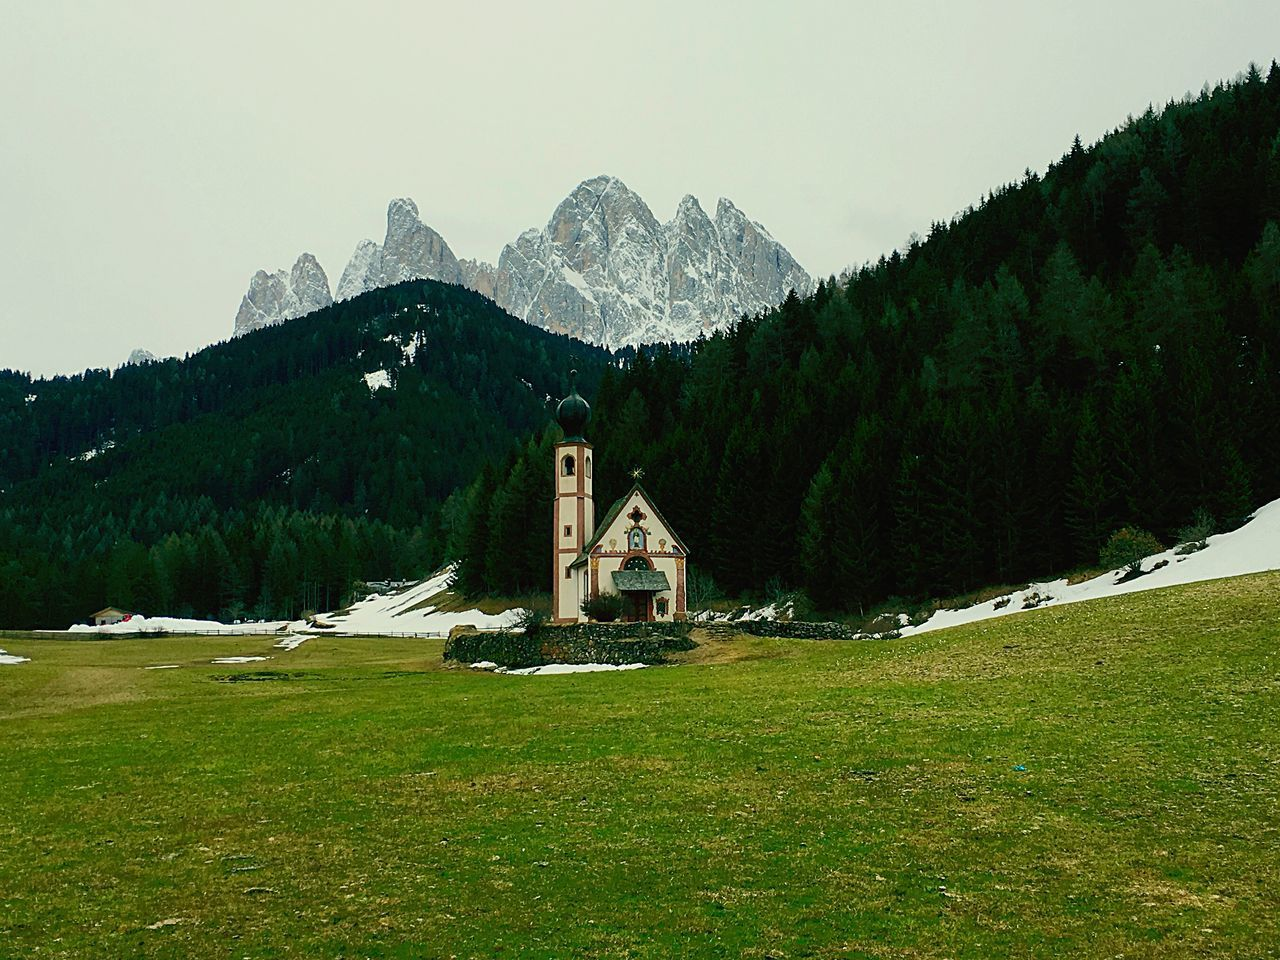 mountain, architecture, plant, sky, nature, built structure, beauty in nature, mountain range, religion, grass, building exterior, day, spirituality, scenics - nature, tree, land, belief, place of worship, building, field, no people, outdoors